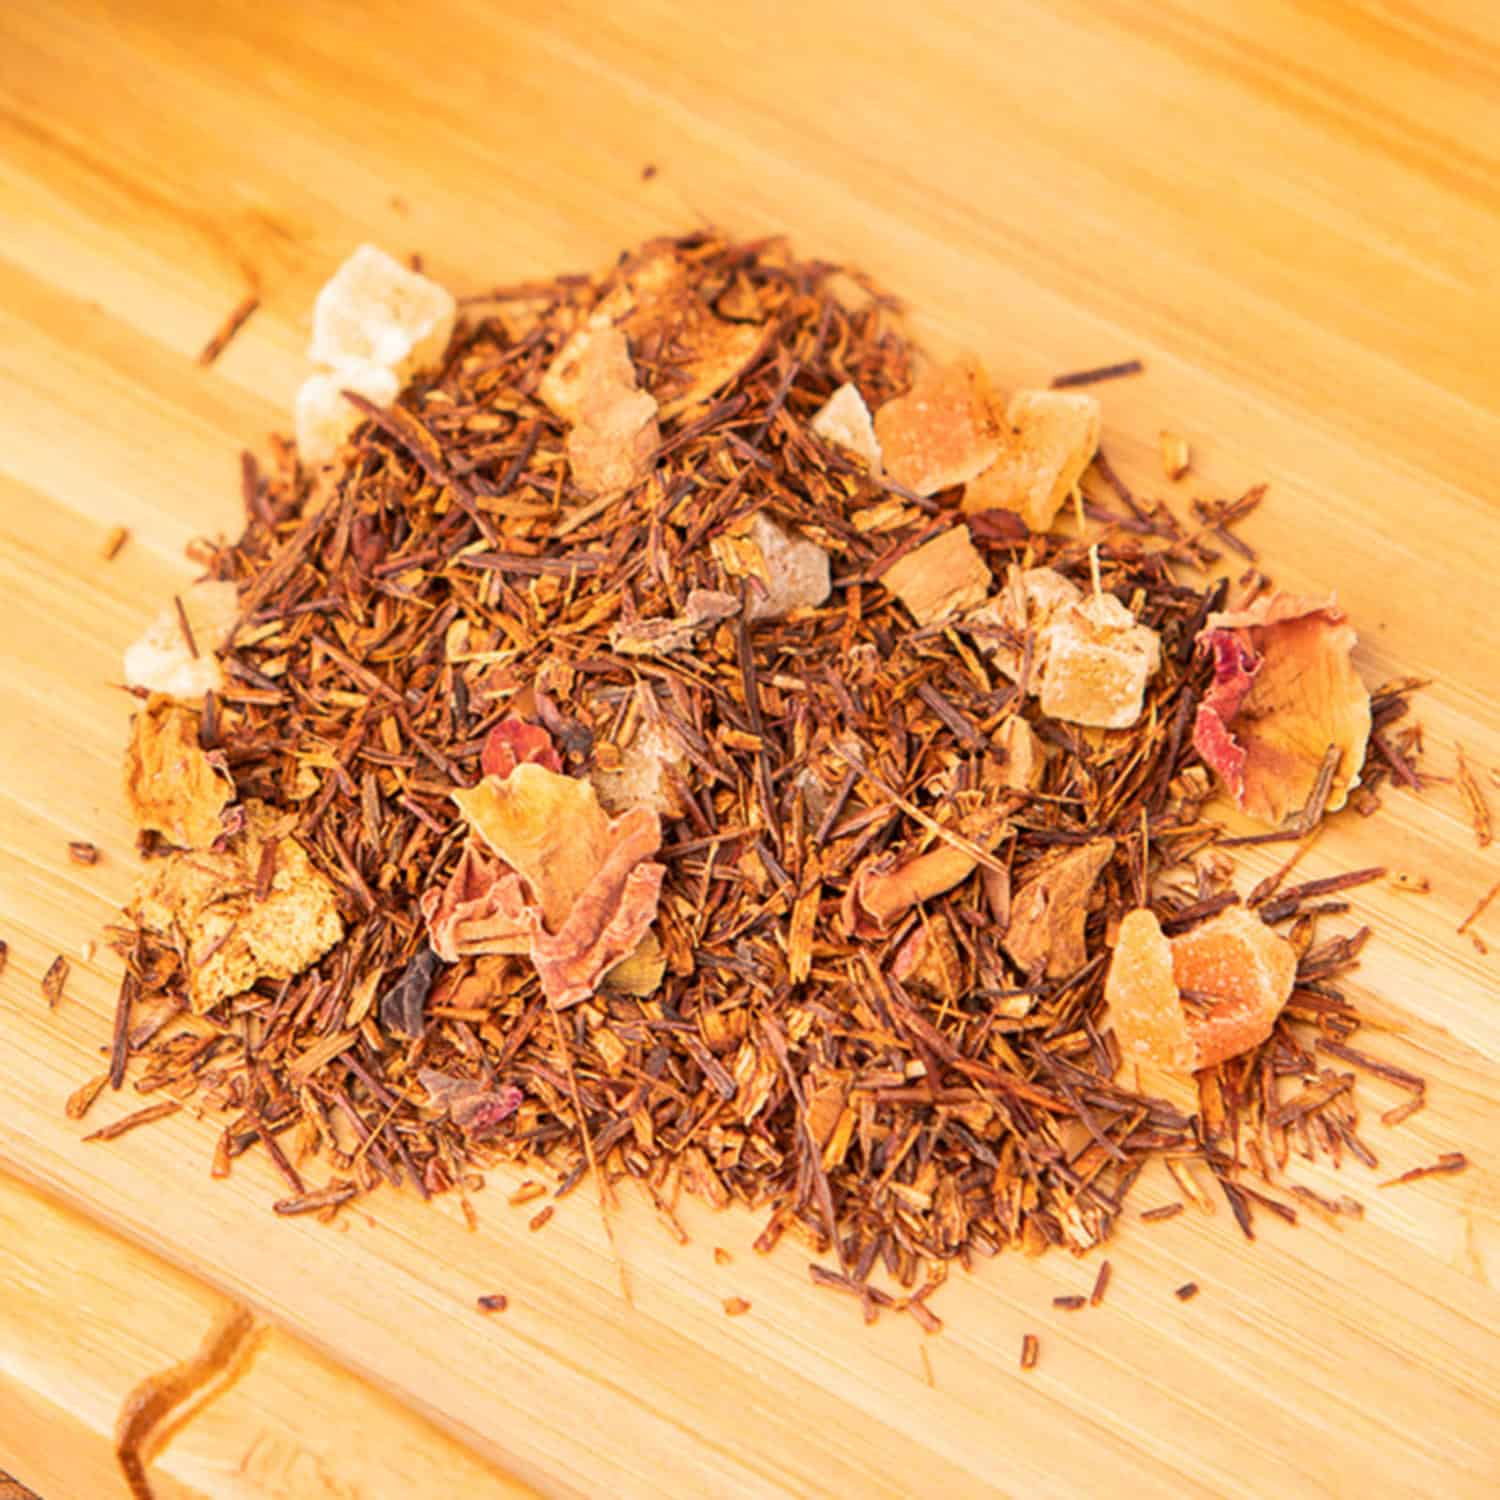 Apple Pie loose-leaf, herbal tea blend: Rooibos, candied pineapple, candied papaya, apple, orange peels, cinnamon, rose buds, rose petals